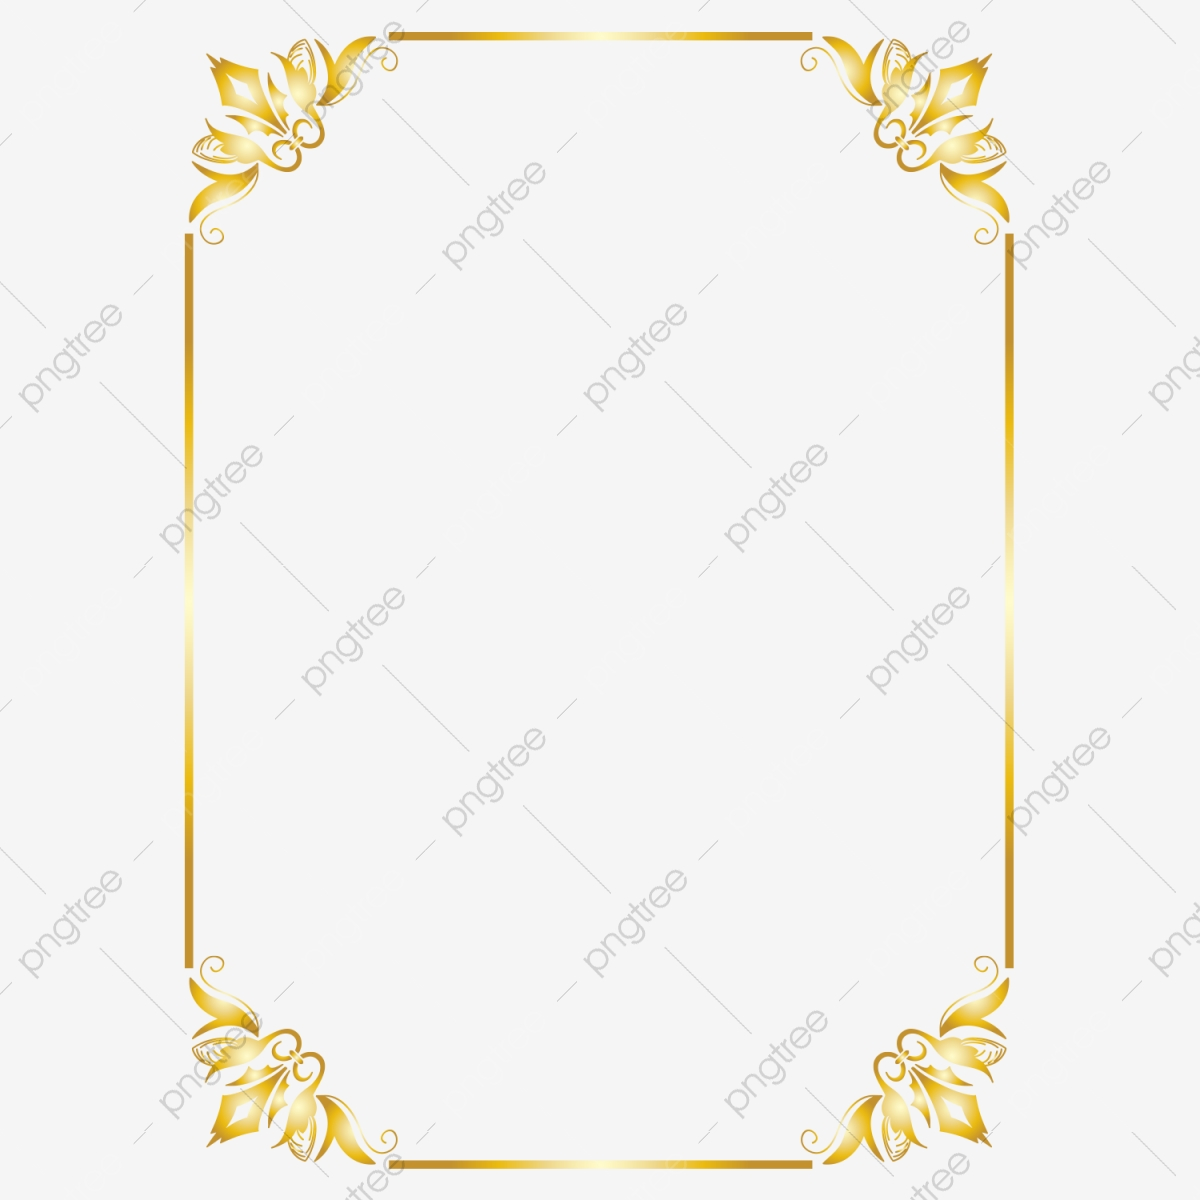 Border Frame Png Images Vector And Psd Files Free Download On Pngtree Here you can explore hq border frame transparent illustrations, icons and clipart with filter setting like size, type, color etc. https pngtree com freepng gold border frame png element 5242815 html